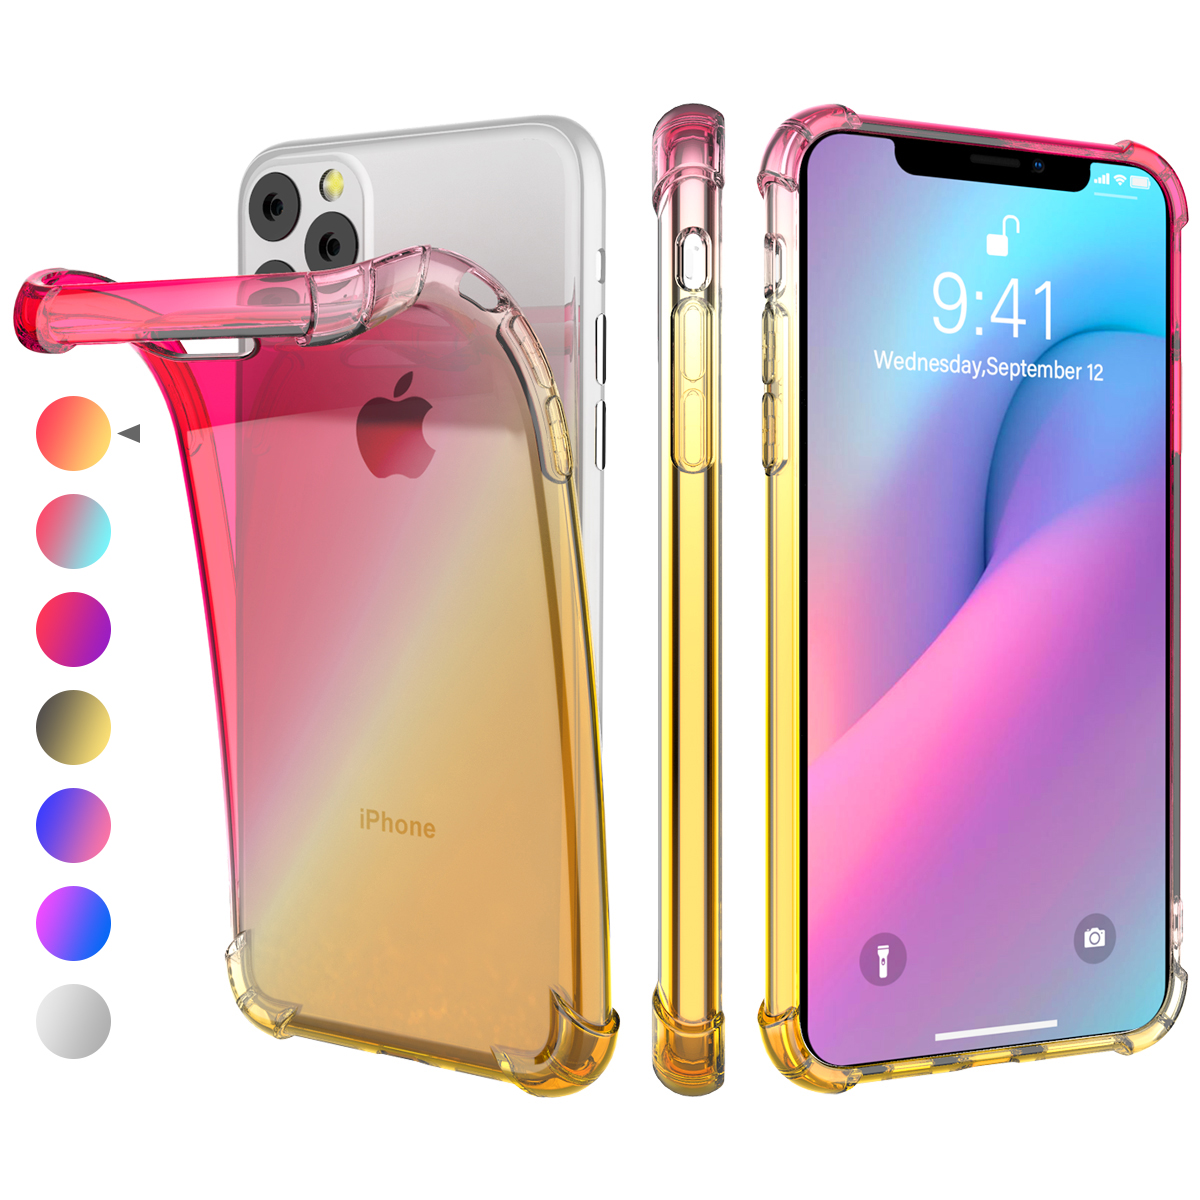 Gradient Soft TPU Case for iPhone 11/11 Pro/11 Pro Max 10